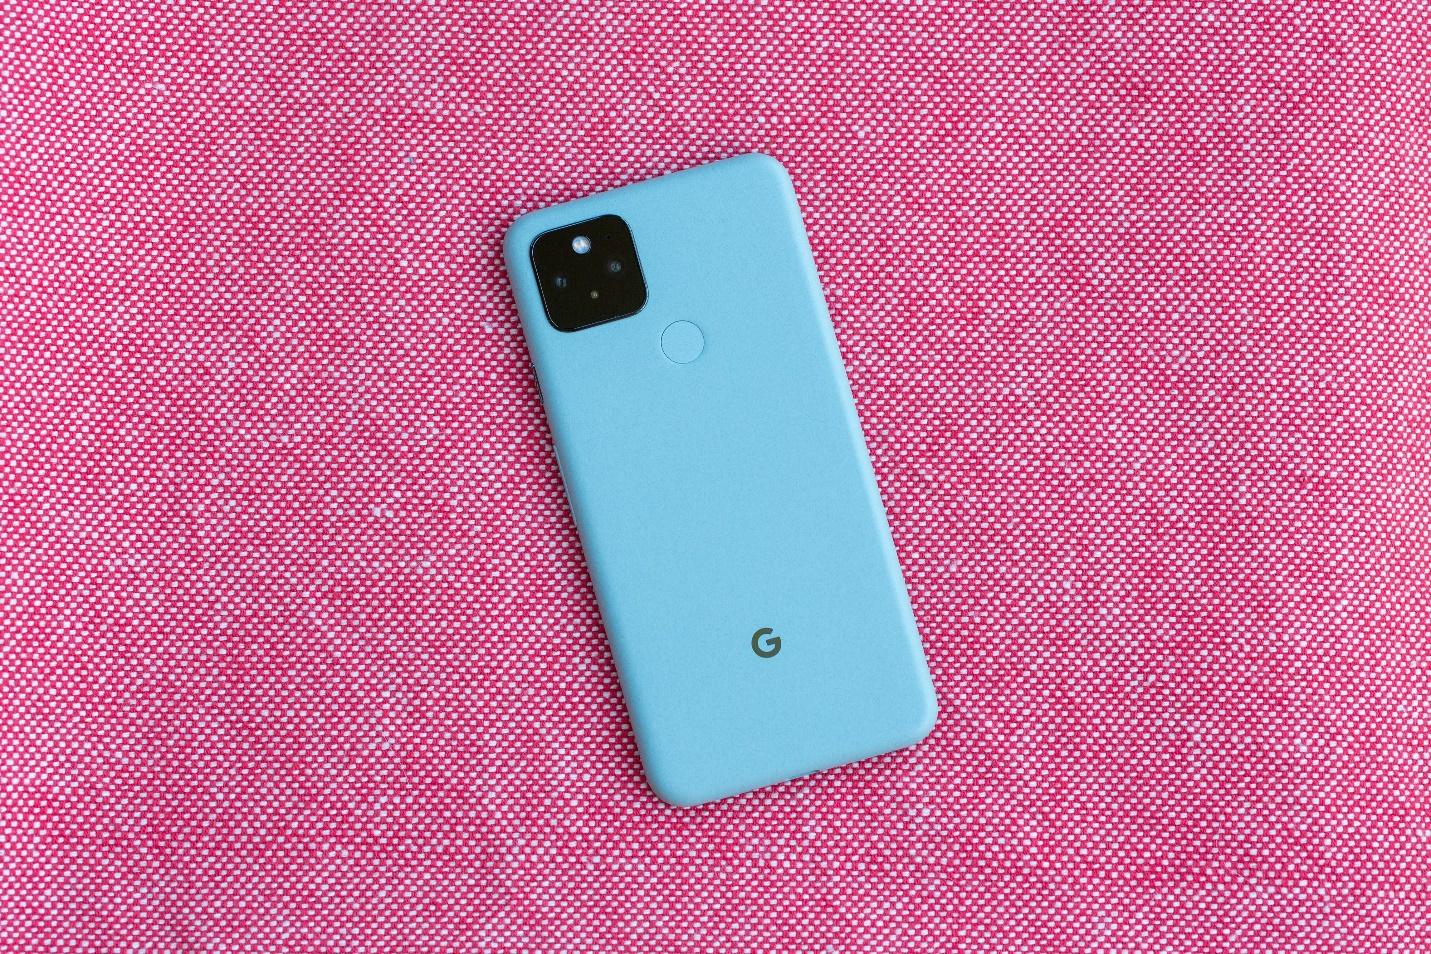 Pixel 5 review: Google's newest phone hasn't pulled ahead of its rivals -  CNET